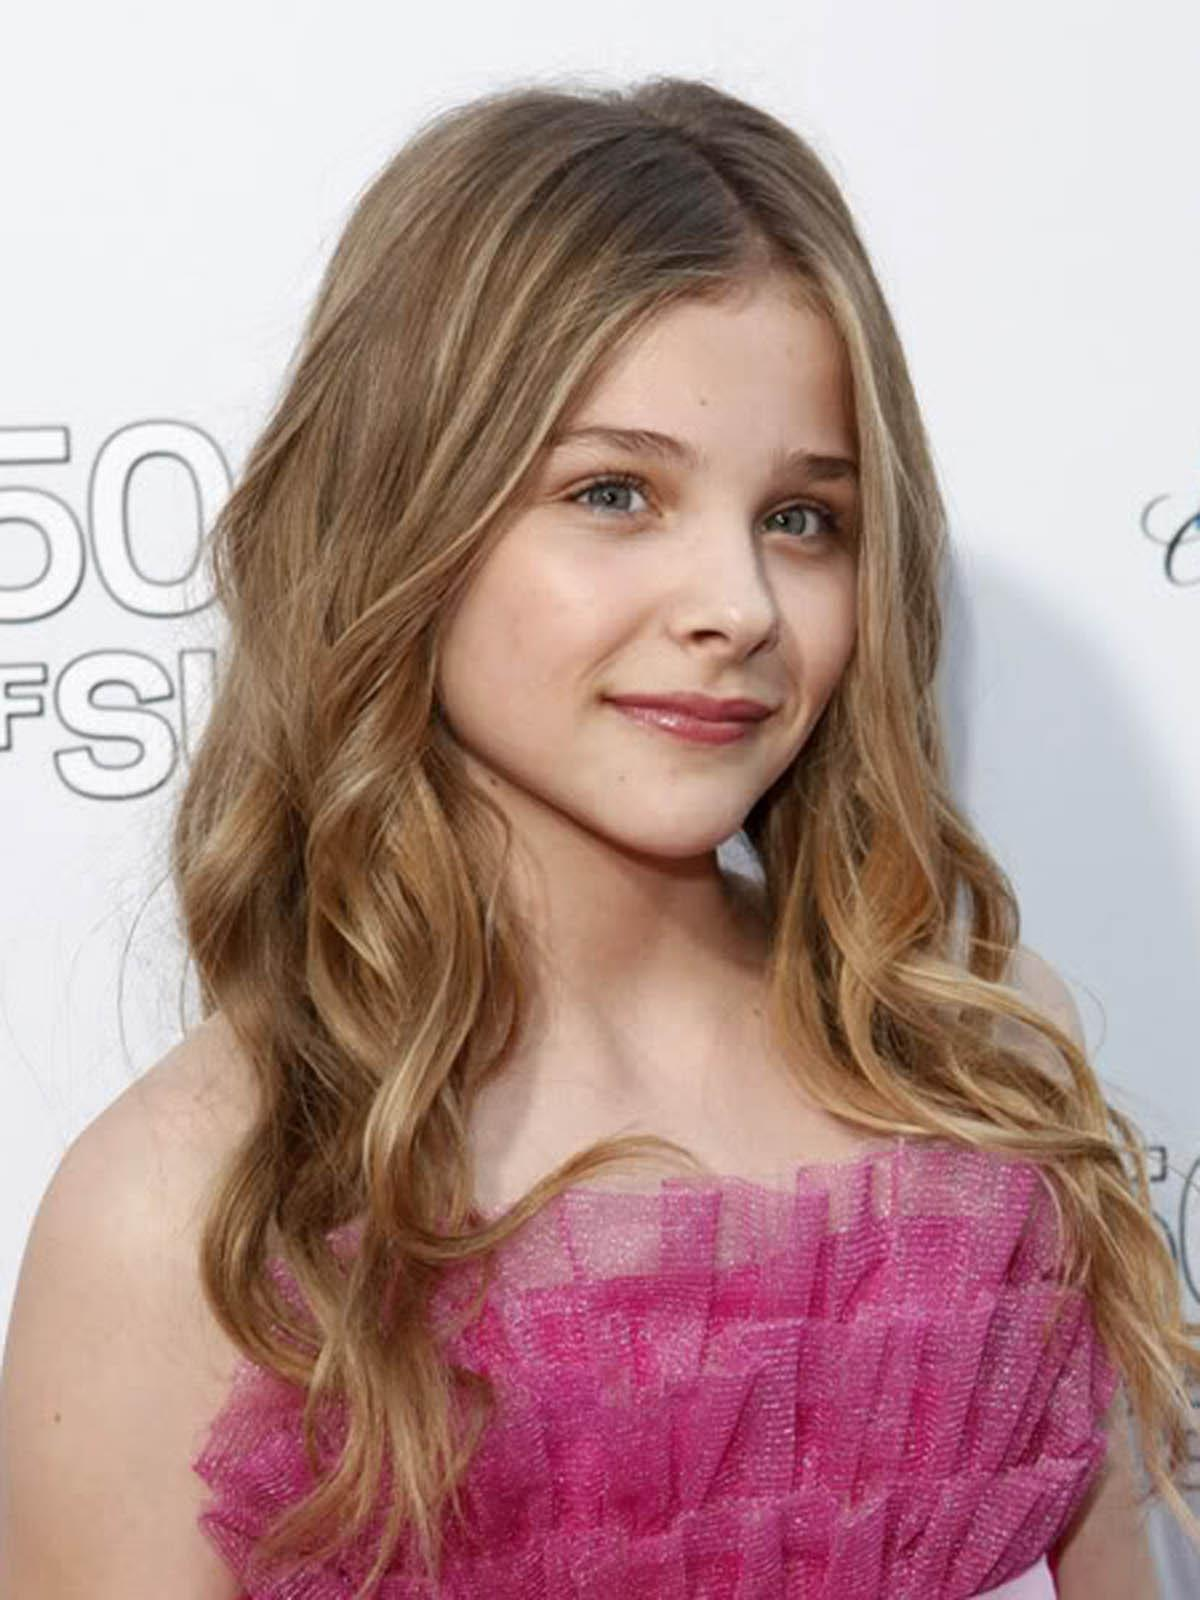 oN4yOh7.jpg (1200×1600) (With images) Chloe grace, Chloe